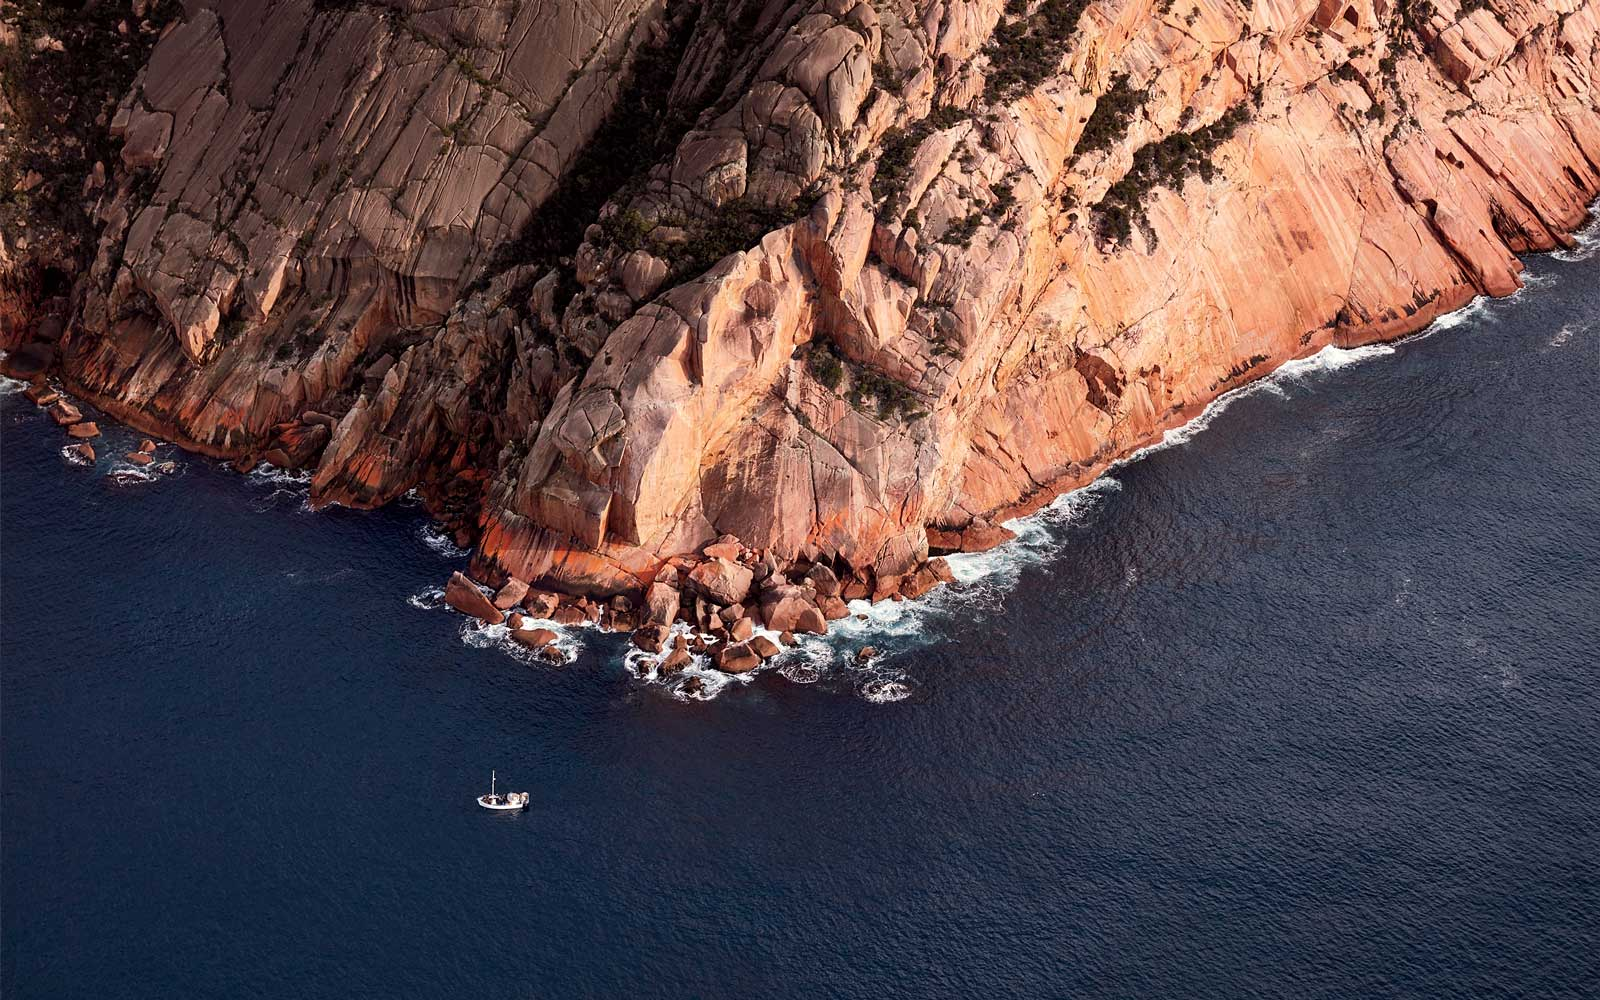 The Hazards in Freycinet National Park, as seen from the air